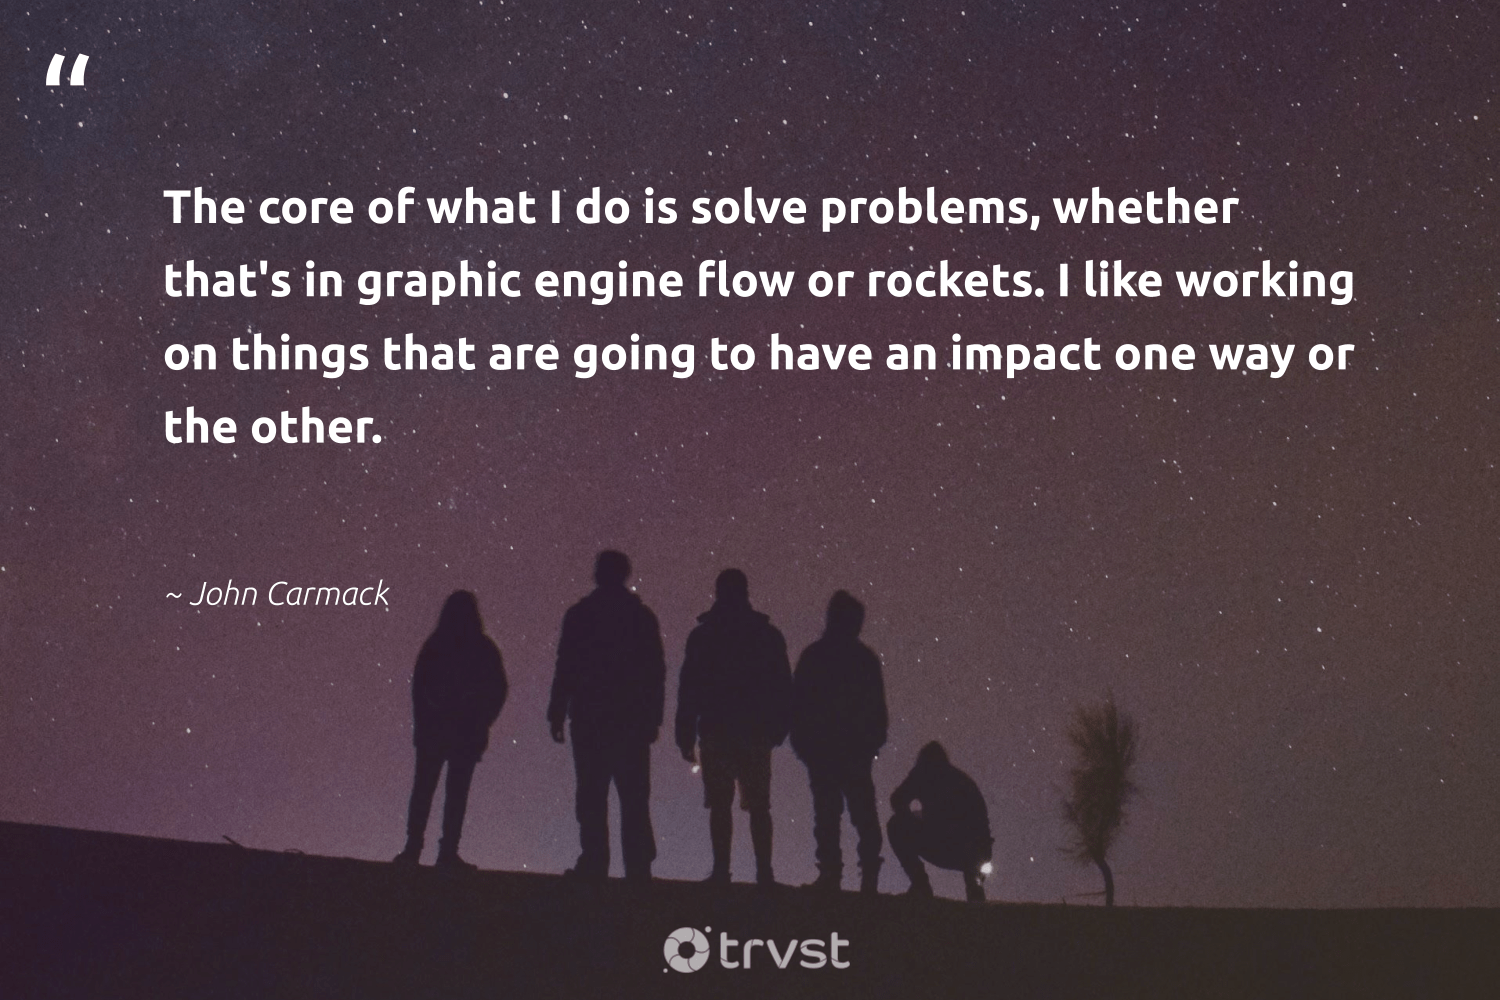 """The core of what I do is solve problems, whether that's in graphic engine flow or rockets. I like working on things that are going to have an impact one way or the other.""  - John Carmack #trvst #quotes #impact #weareallone #planetearthfirst #dogood #ecoconscious #betterplanet #bethechange #ethicalbusiness #socialimpact #socialchange"